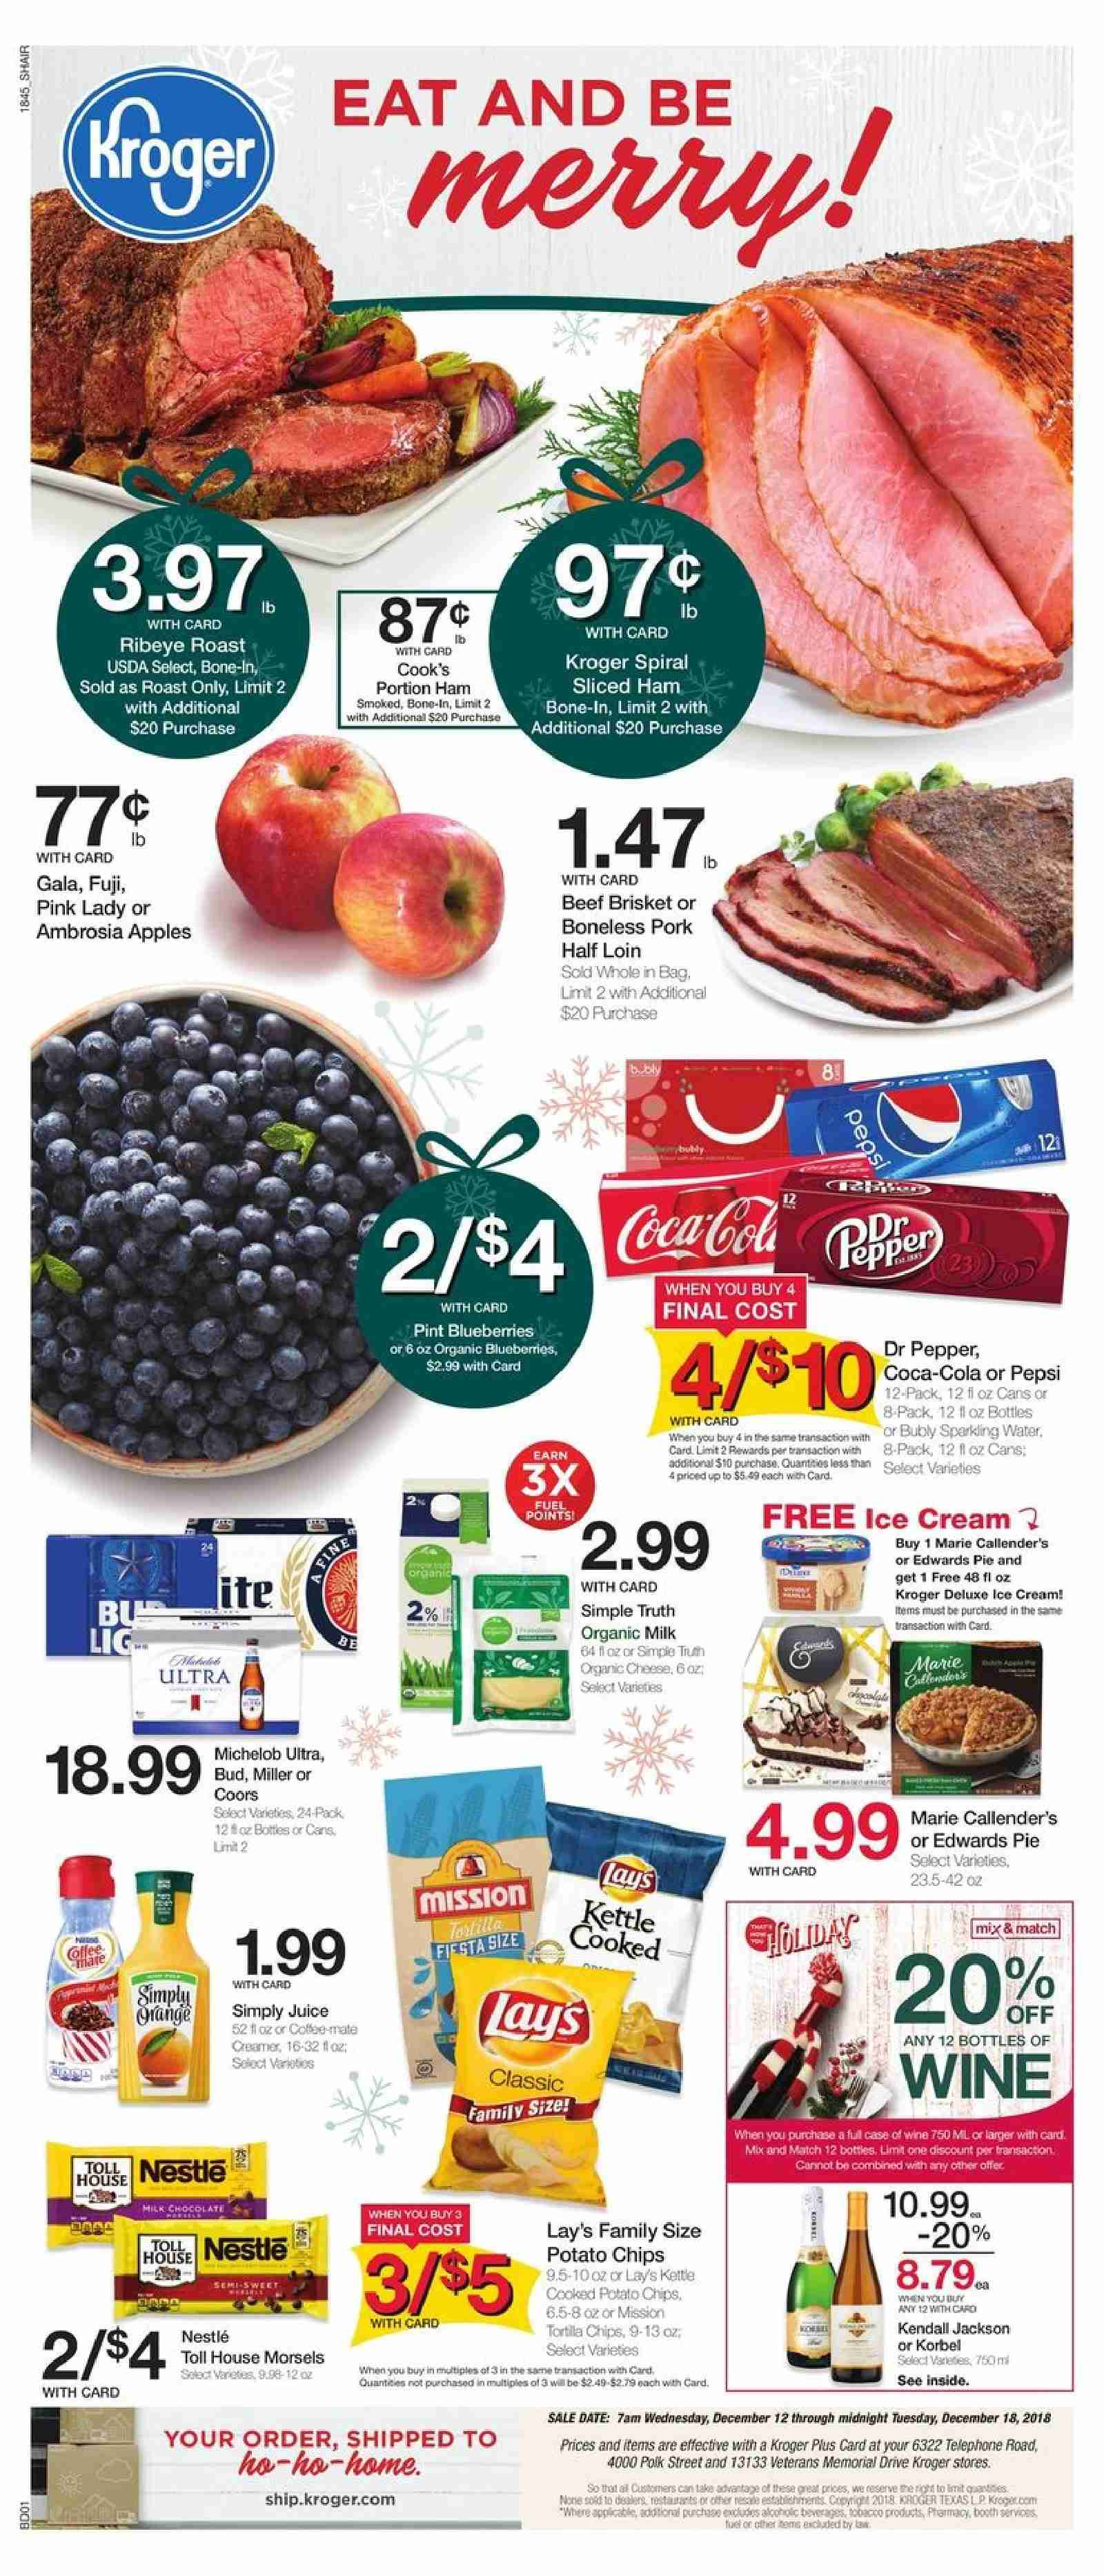 Kroger Flyer - 12.12.2018 - 12.18.2018 - Sales products - Michelob, apples, pie, ham, cheese, creamer, ice cream, chocolate, potato chips, chips, Lay's, pepper, Coca-Cola, Pepsi, juice, Dr. Pepper, sparkling water, water, wine, beef meat, pork meat, kettle, fuel. Page 1.